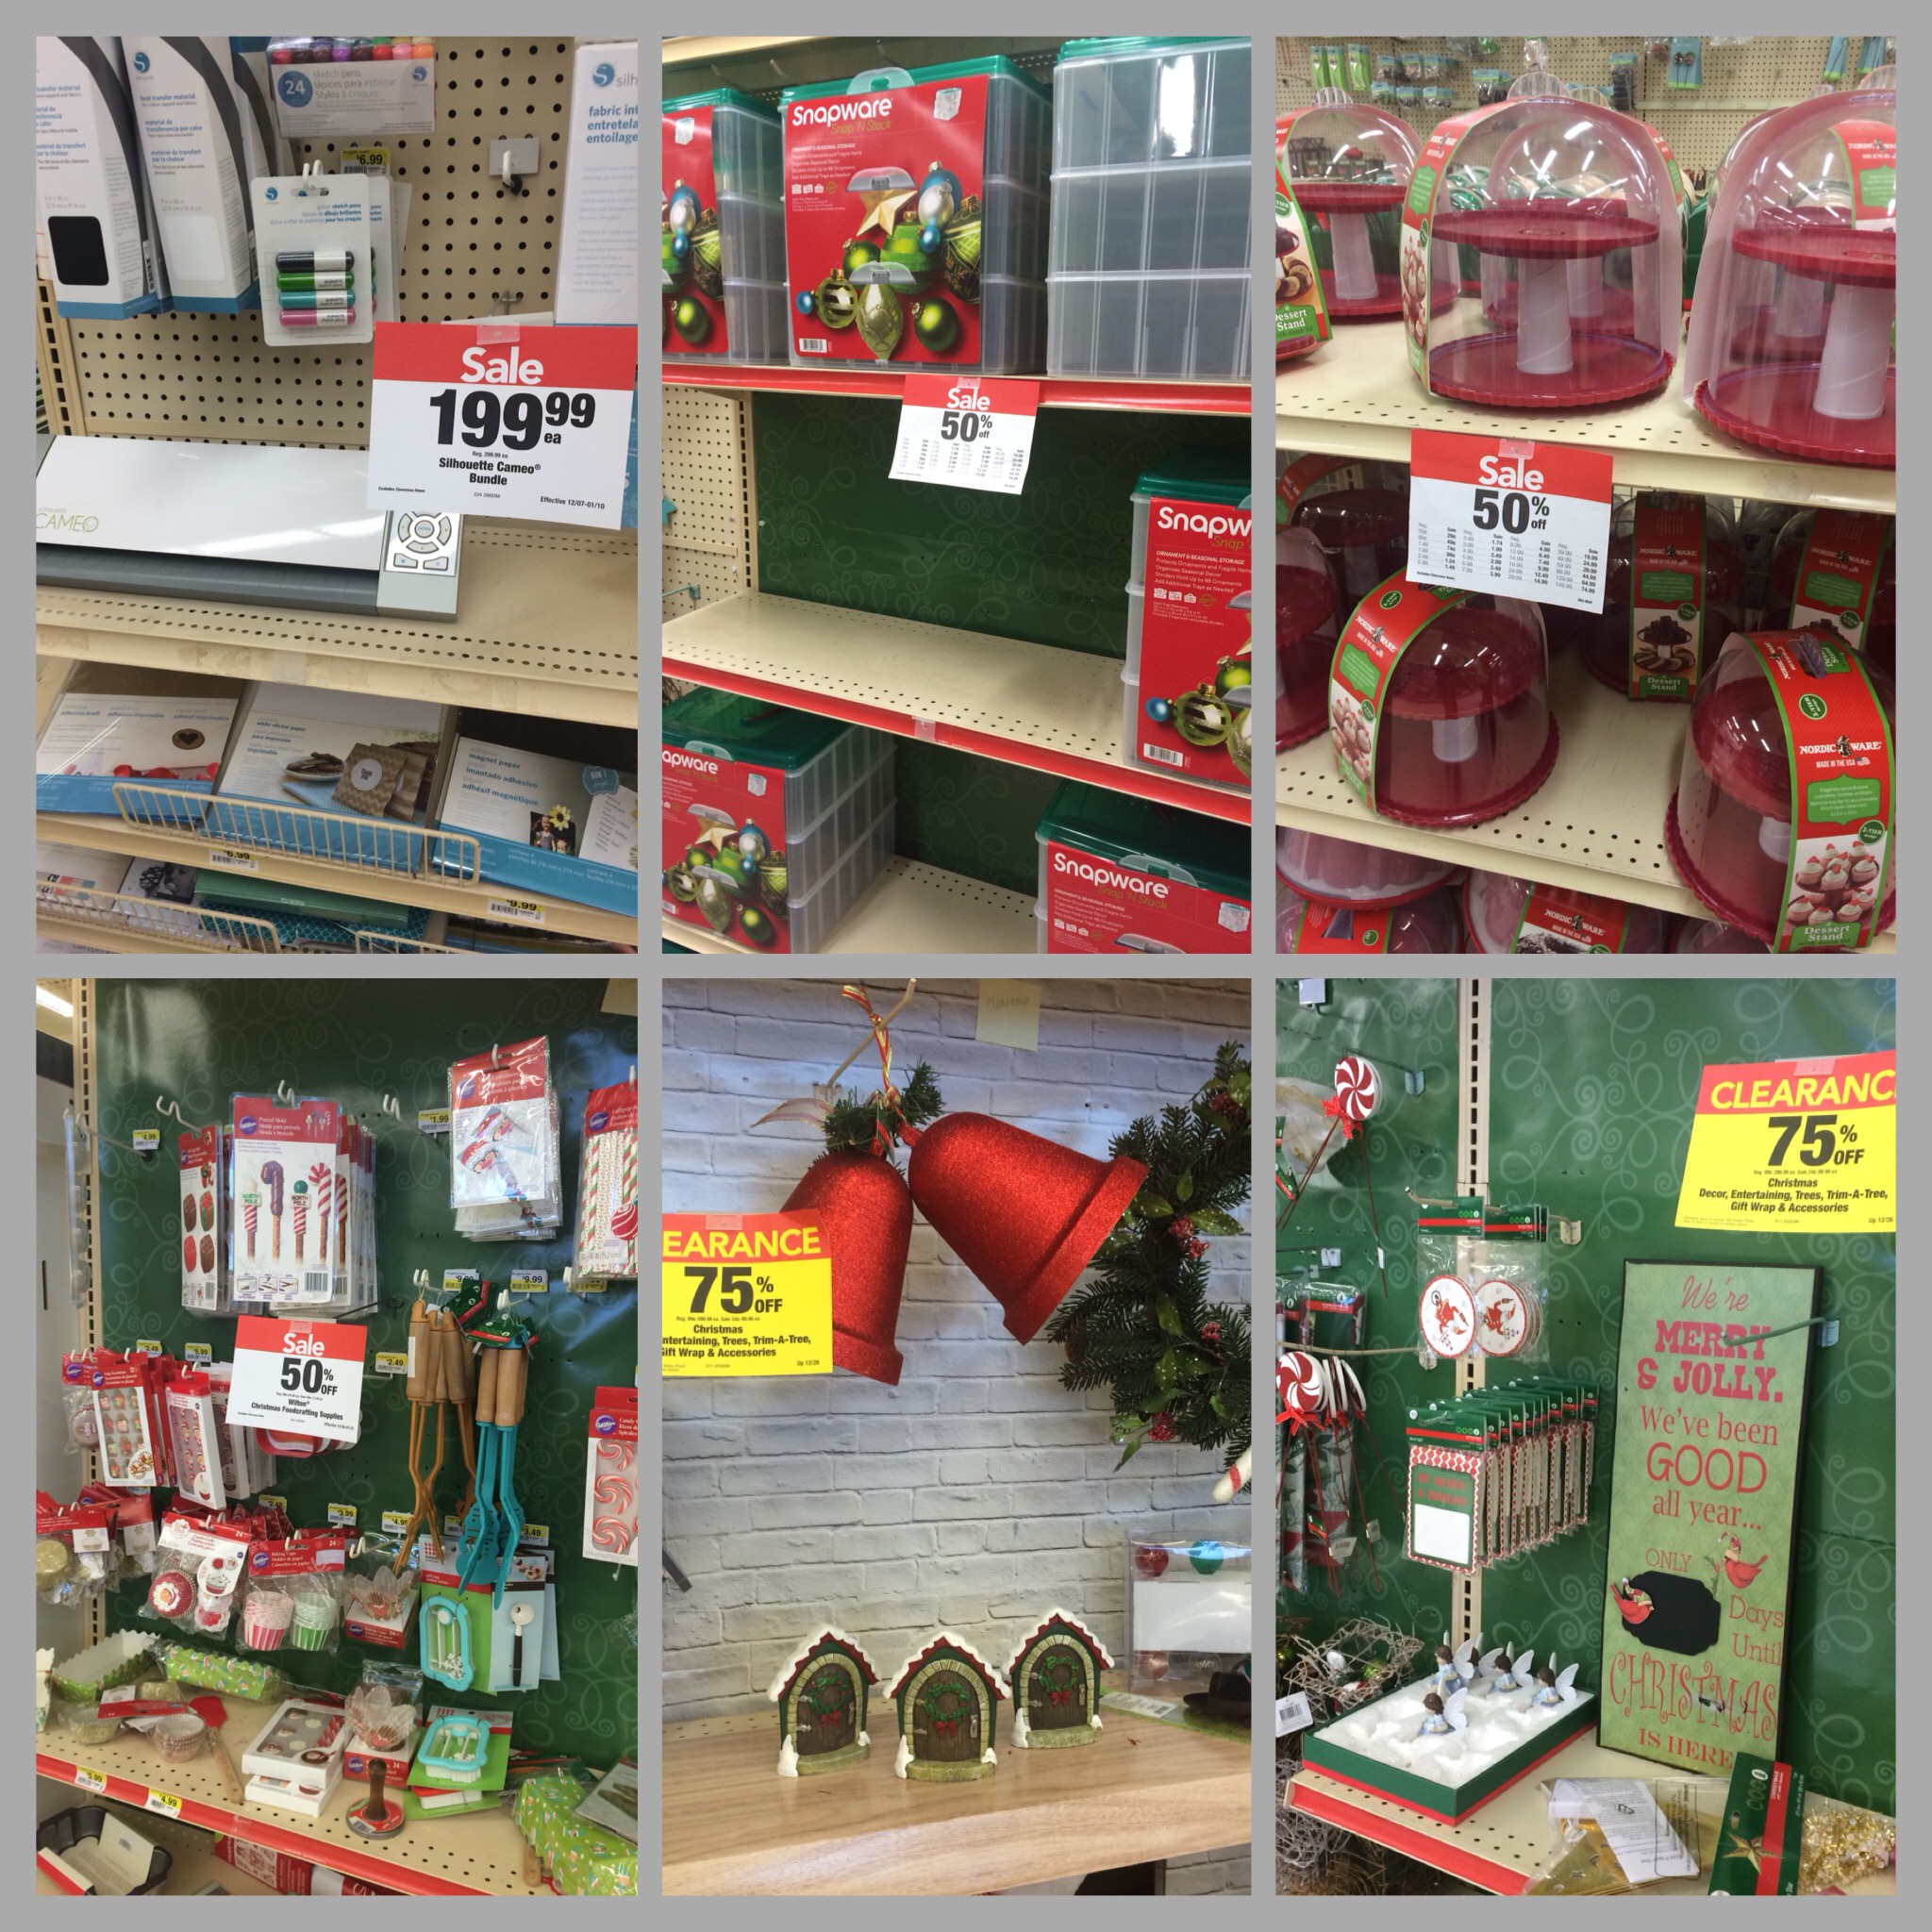 Christmas Decorations Hobby Lobby: Up To 80% Off Christmas Clearance At Hobby Lobby, Michael